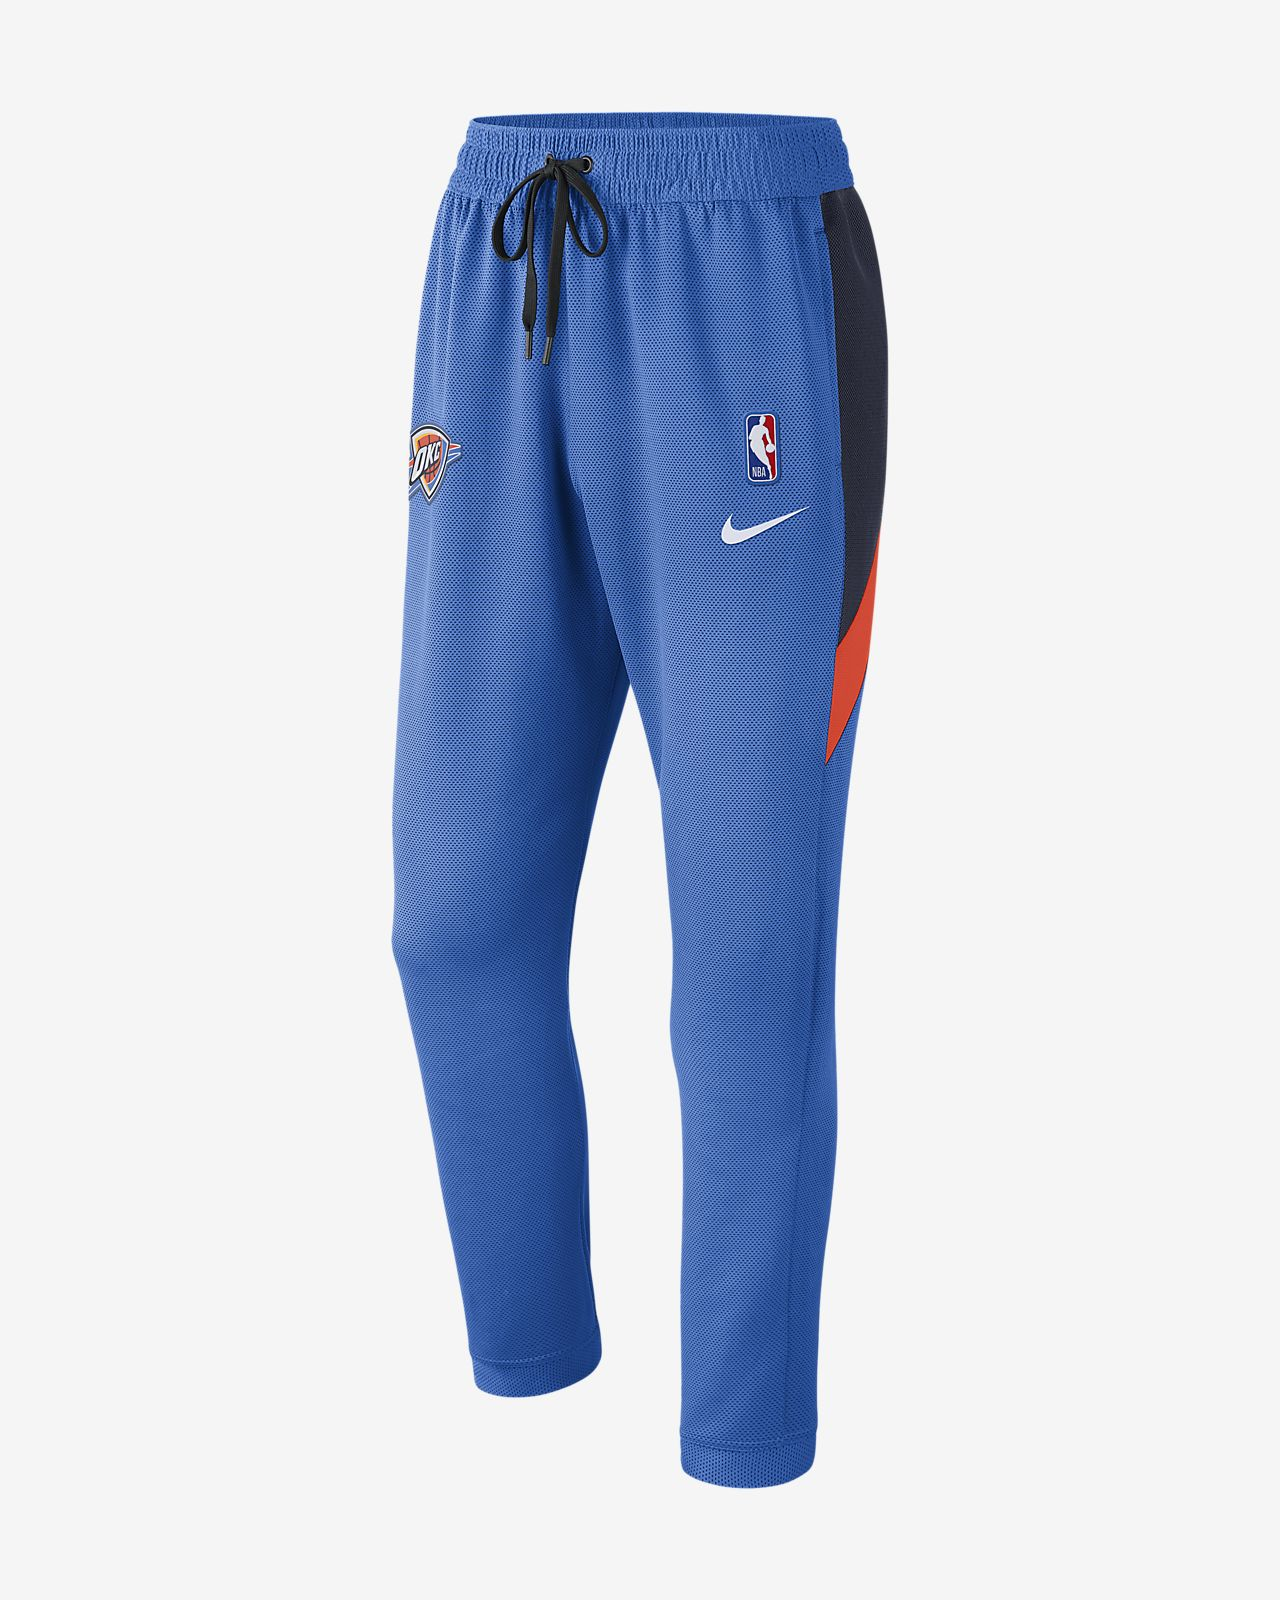 Oklahoma City Thunder Nike Therma Flex Showtime NBA-herenbroek